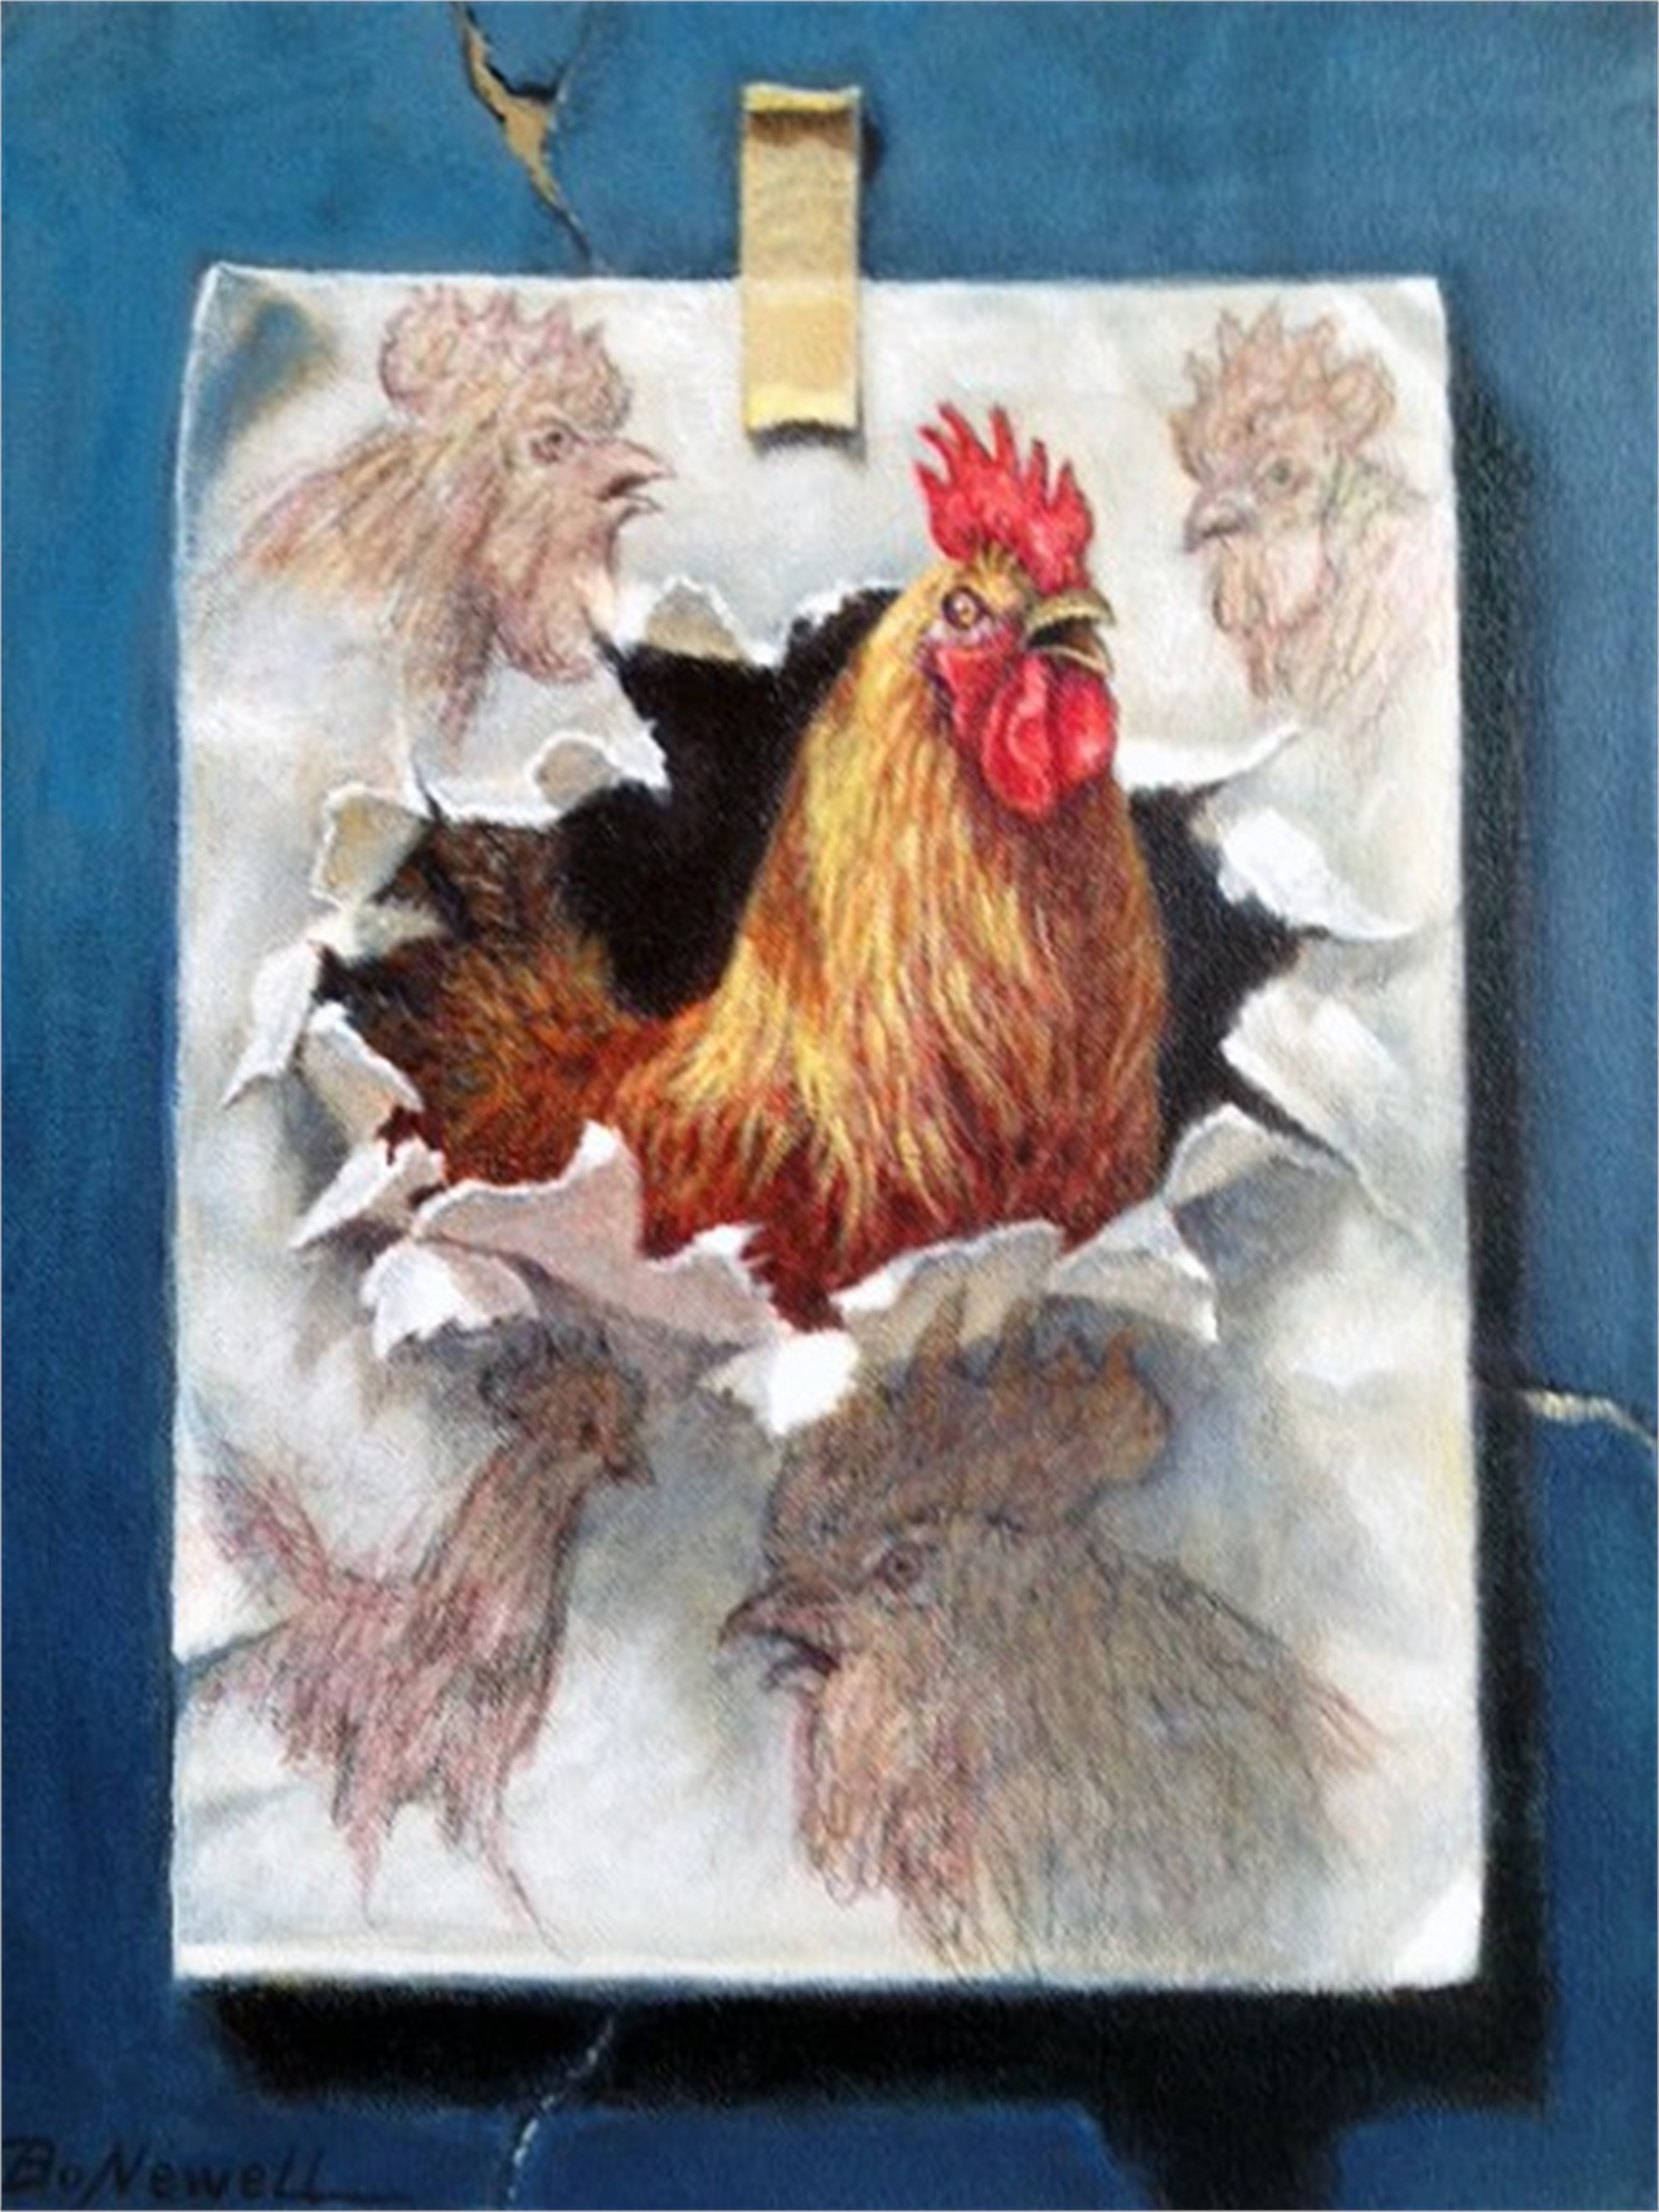 Cock-a-Doodle-Doo by Bo Newell